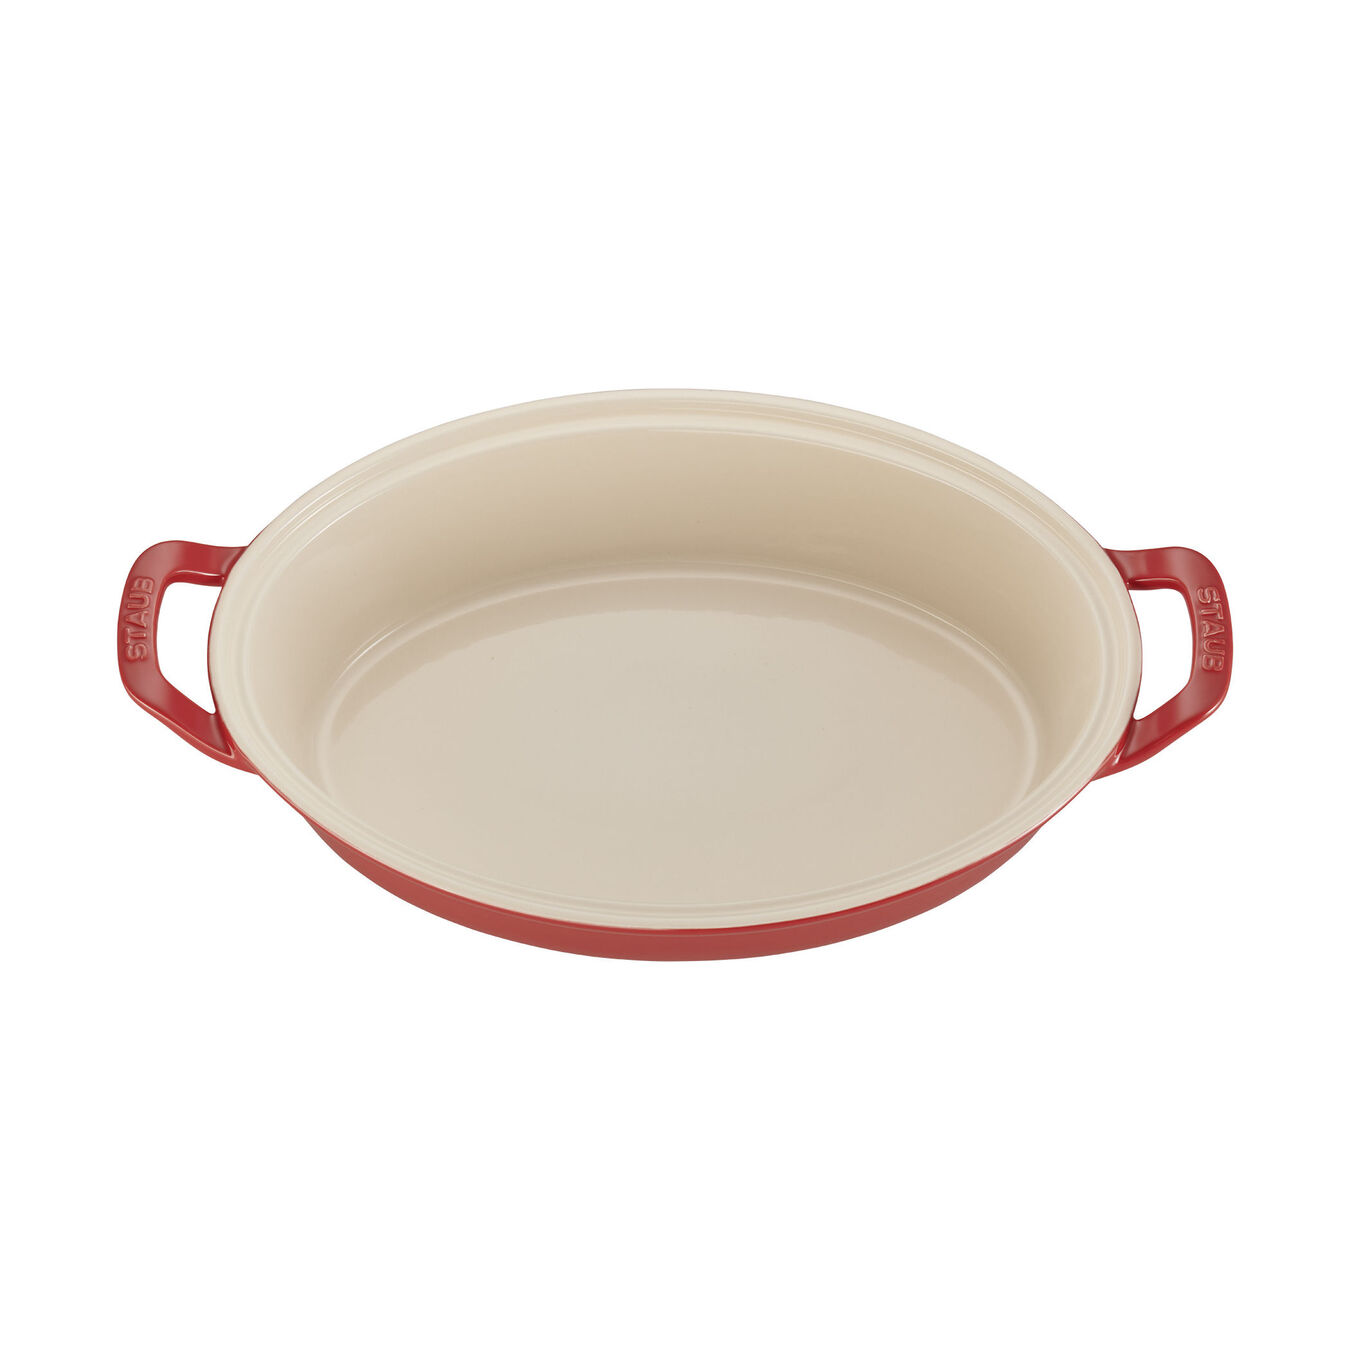 14-inch Oval Covered Baking Dish - Cherry,,large 2